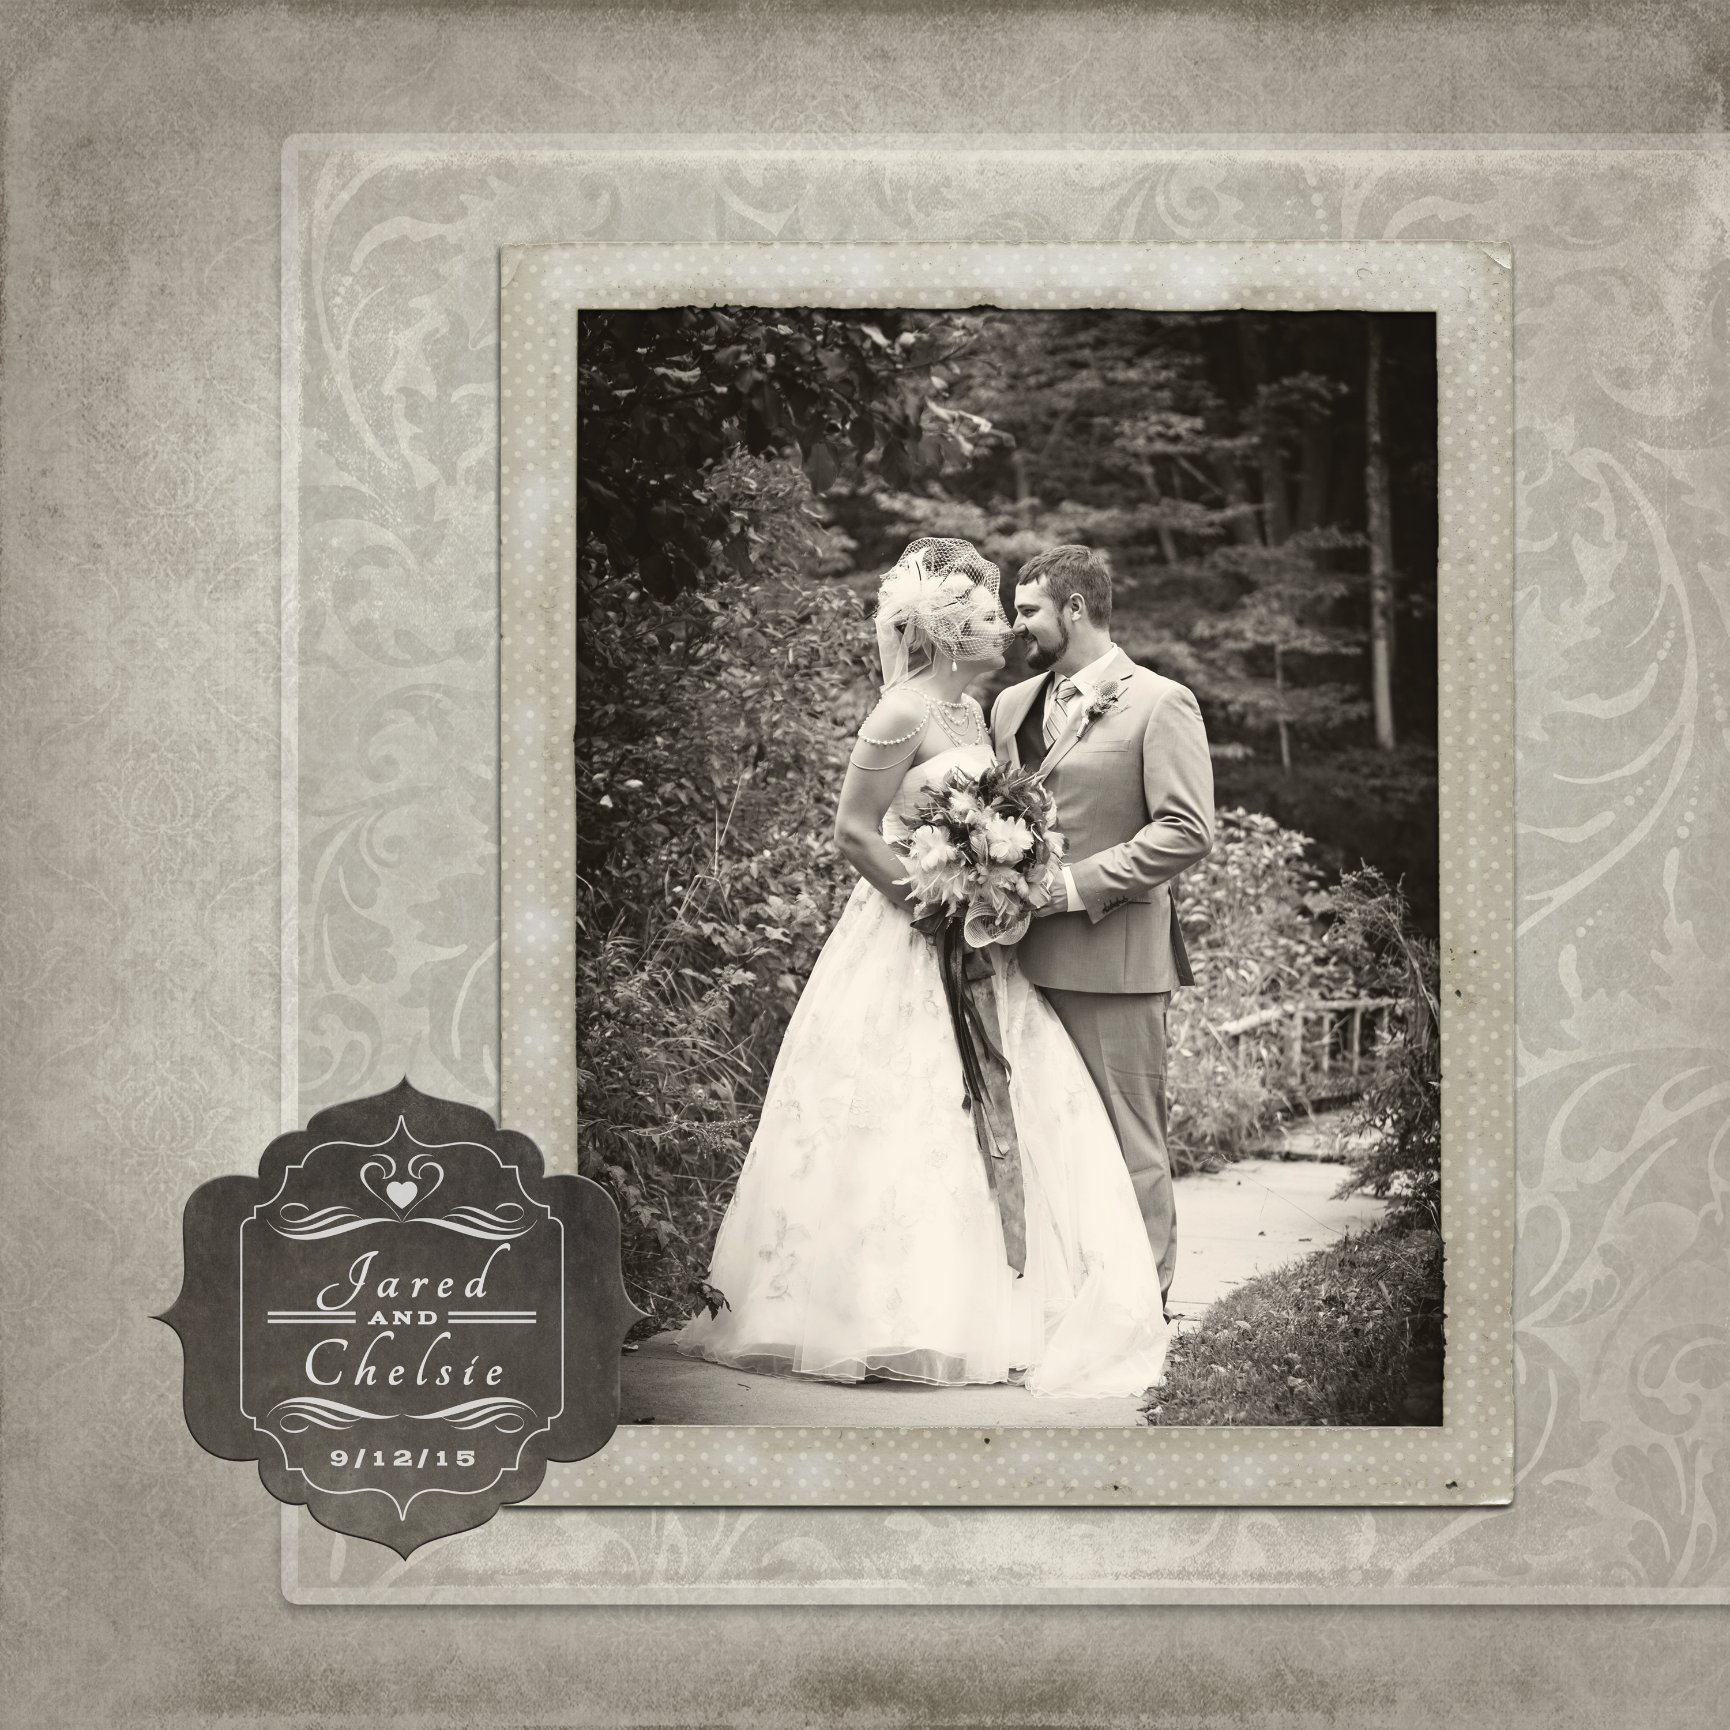 Judy K. Gilde - Wedding Senior Family Photography and more based in ...